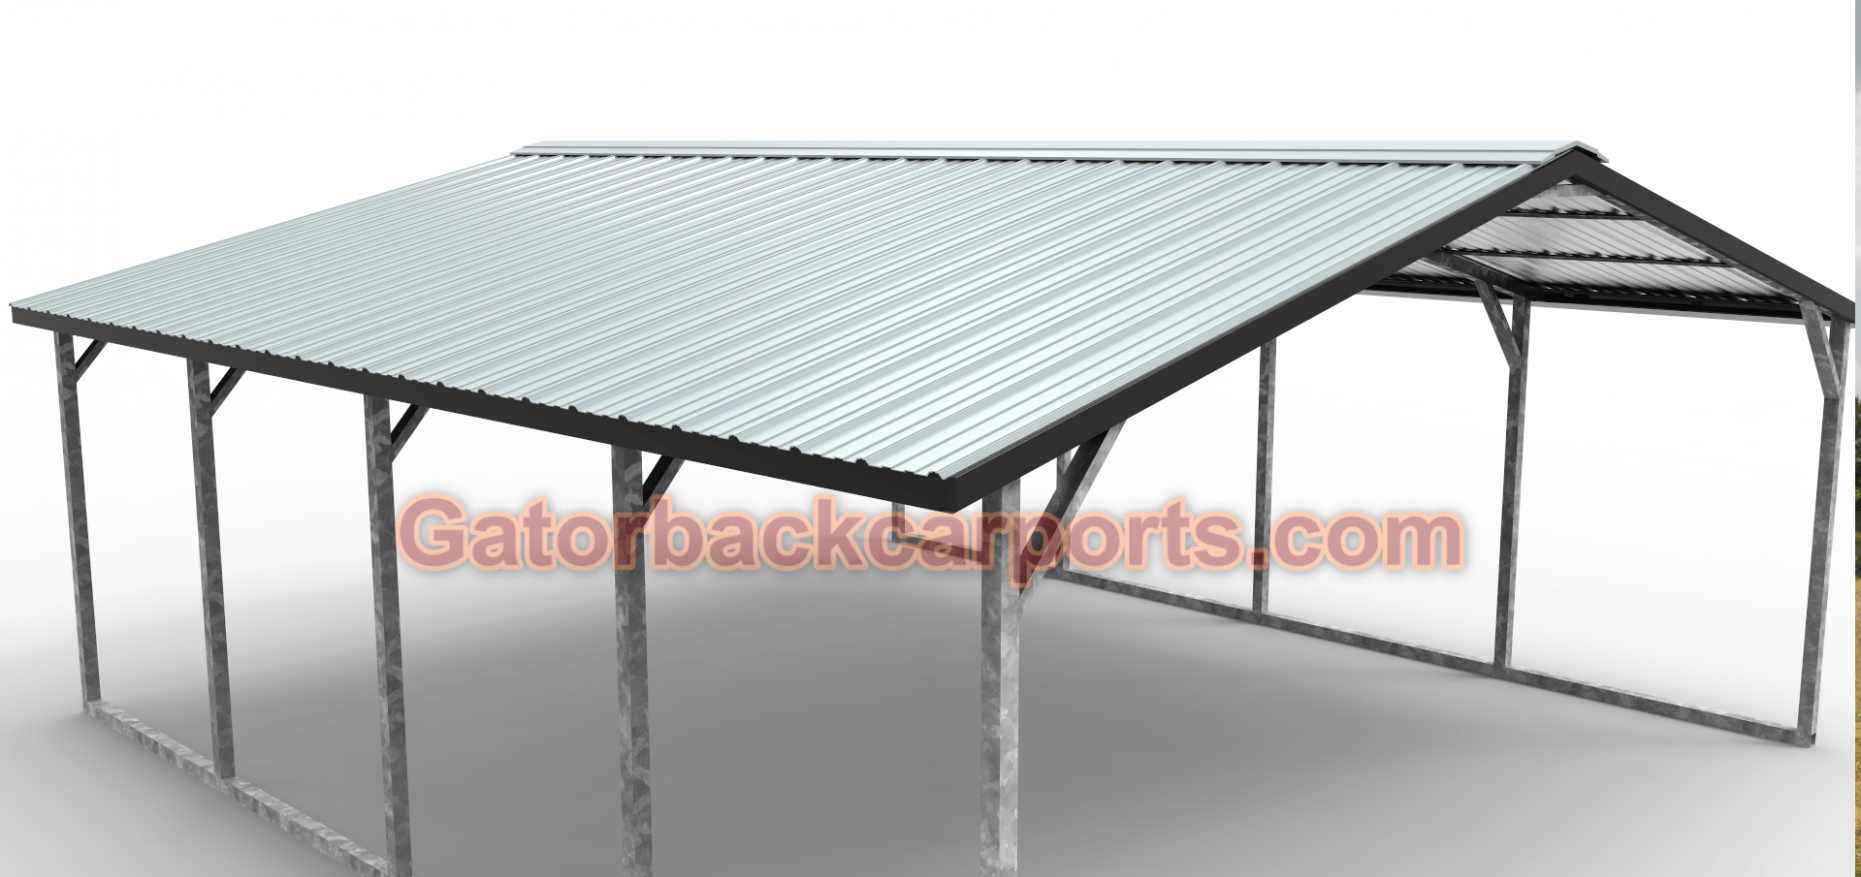 Metal Carport 18X21 ALL STEEL Steel Car Cover INSTALLED ..